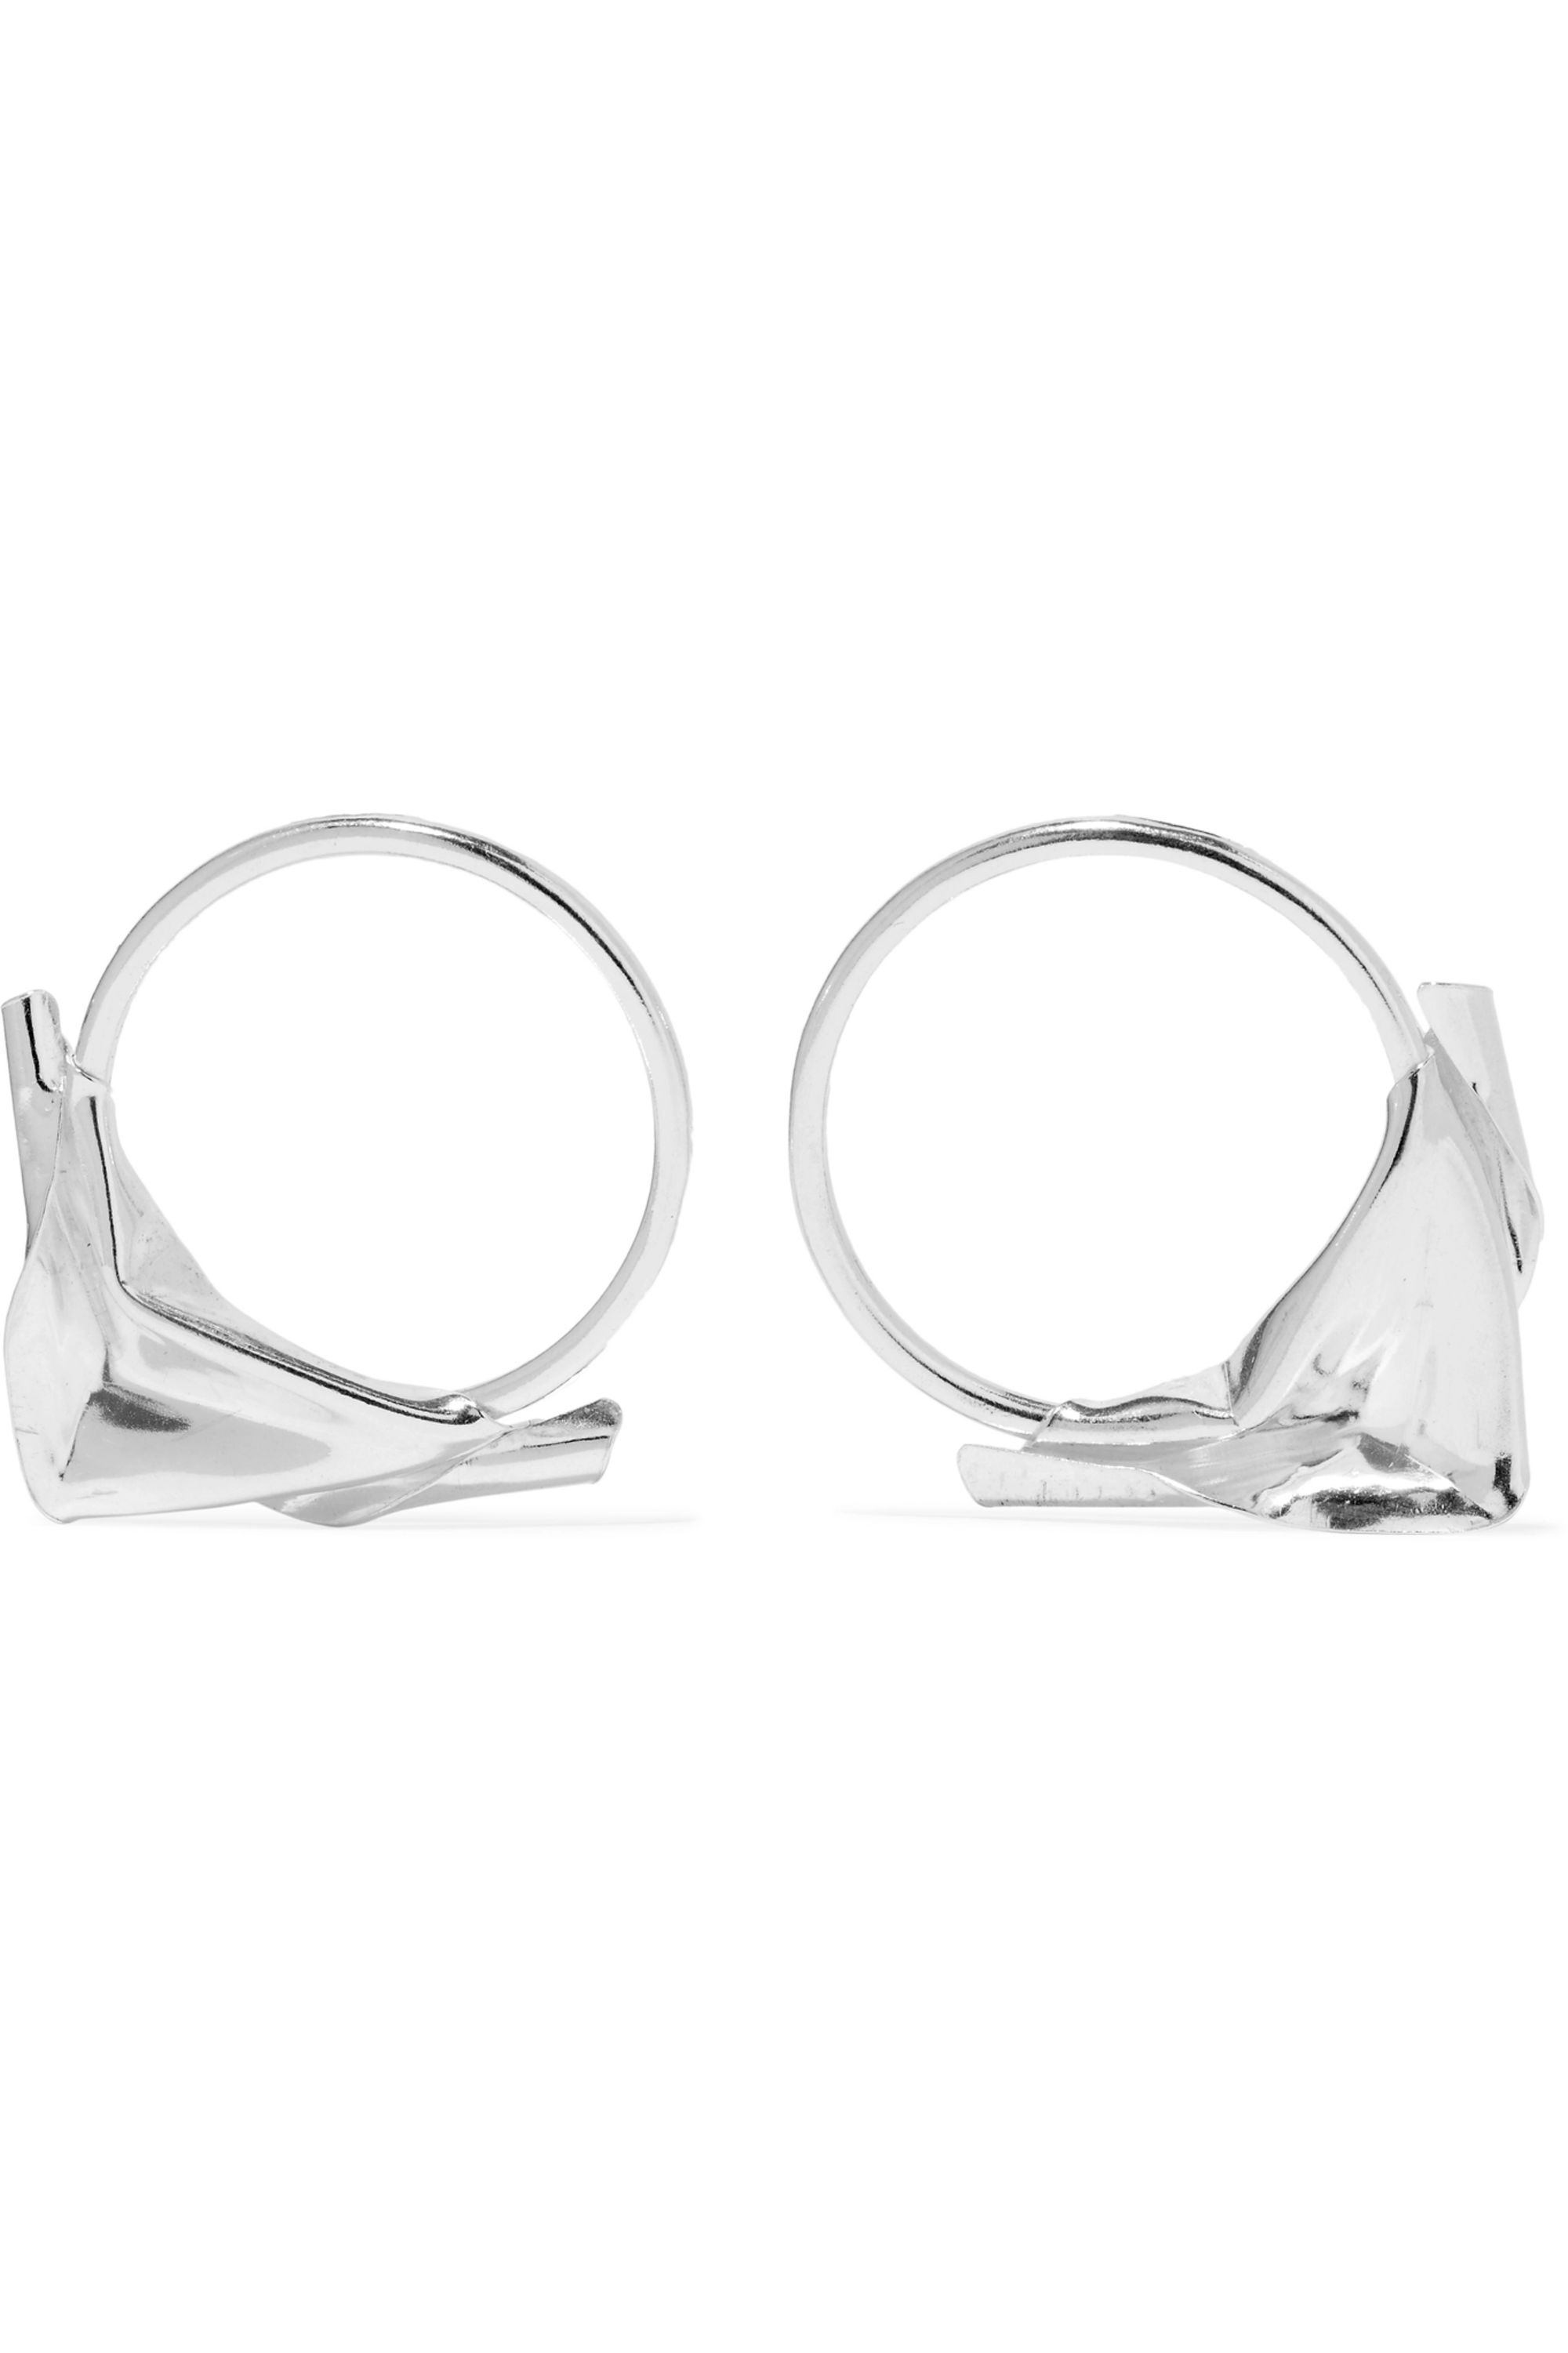 Wwake Closer by Wwake sterling silver earrings